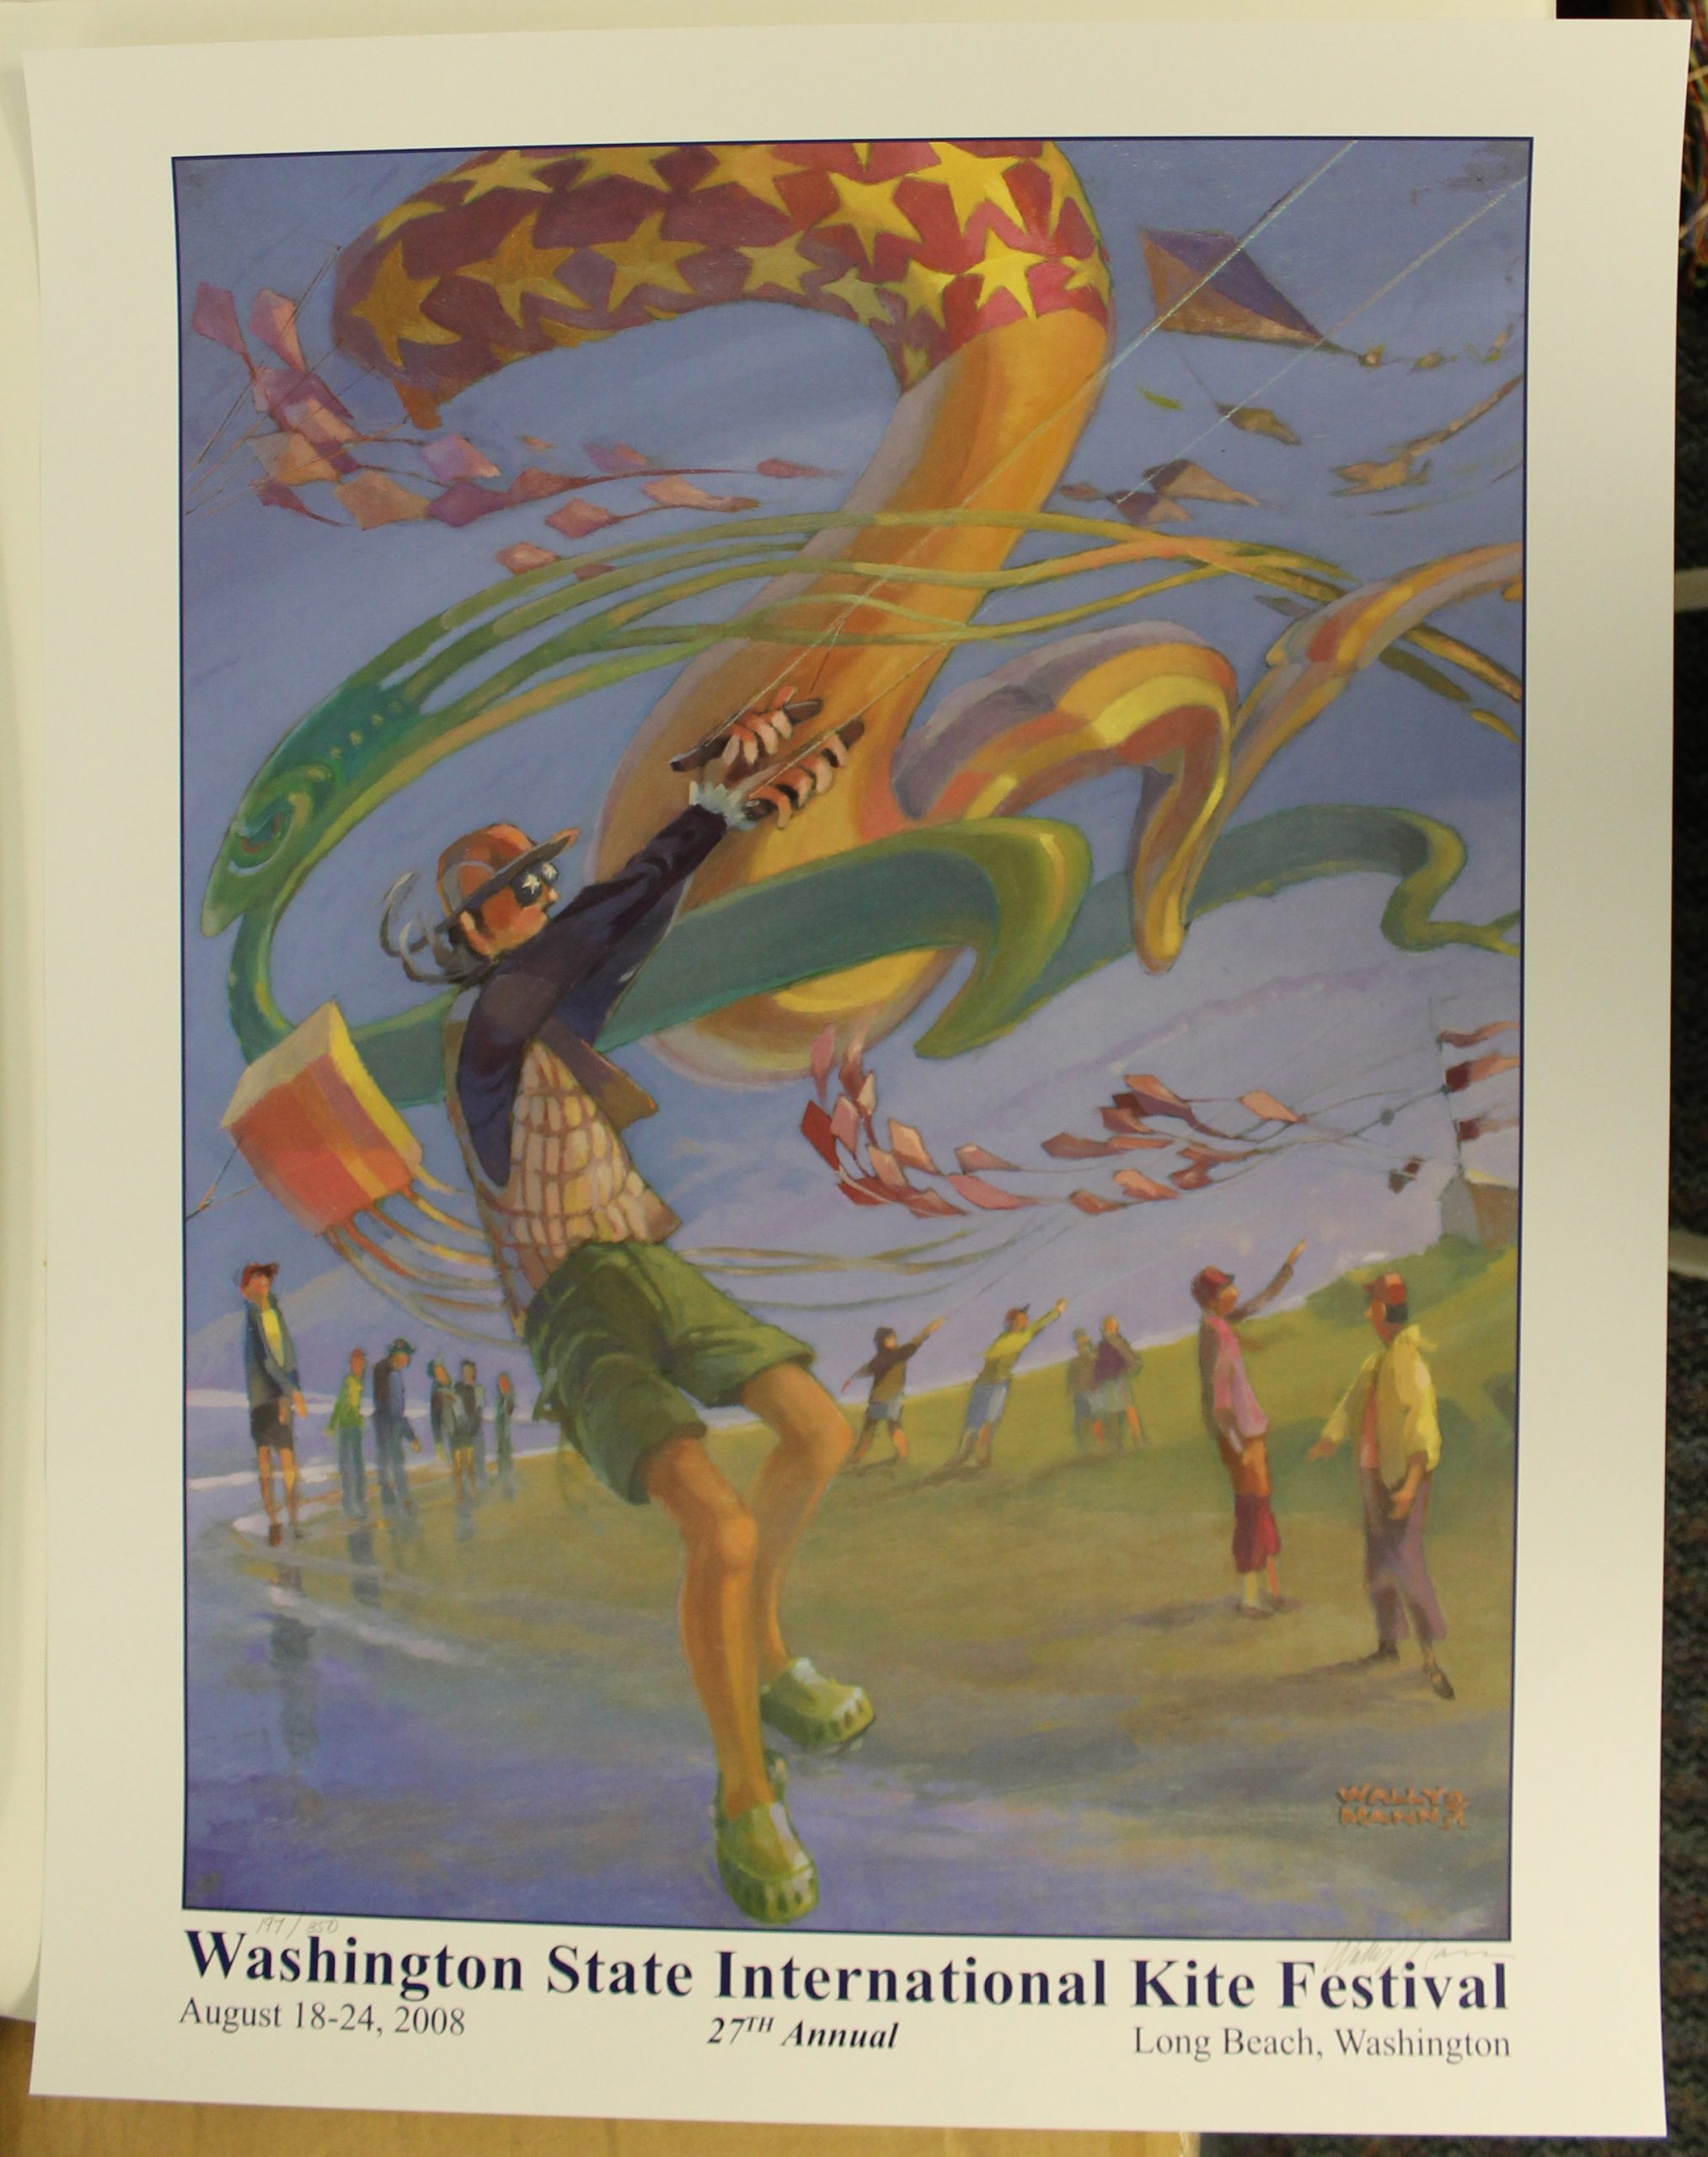 Kite Festival Poster Contest – World Kite Museum With Long Beach Washington Events 2021